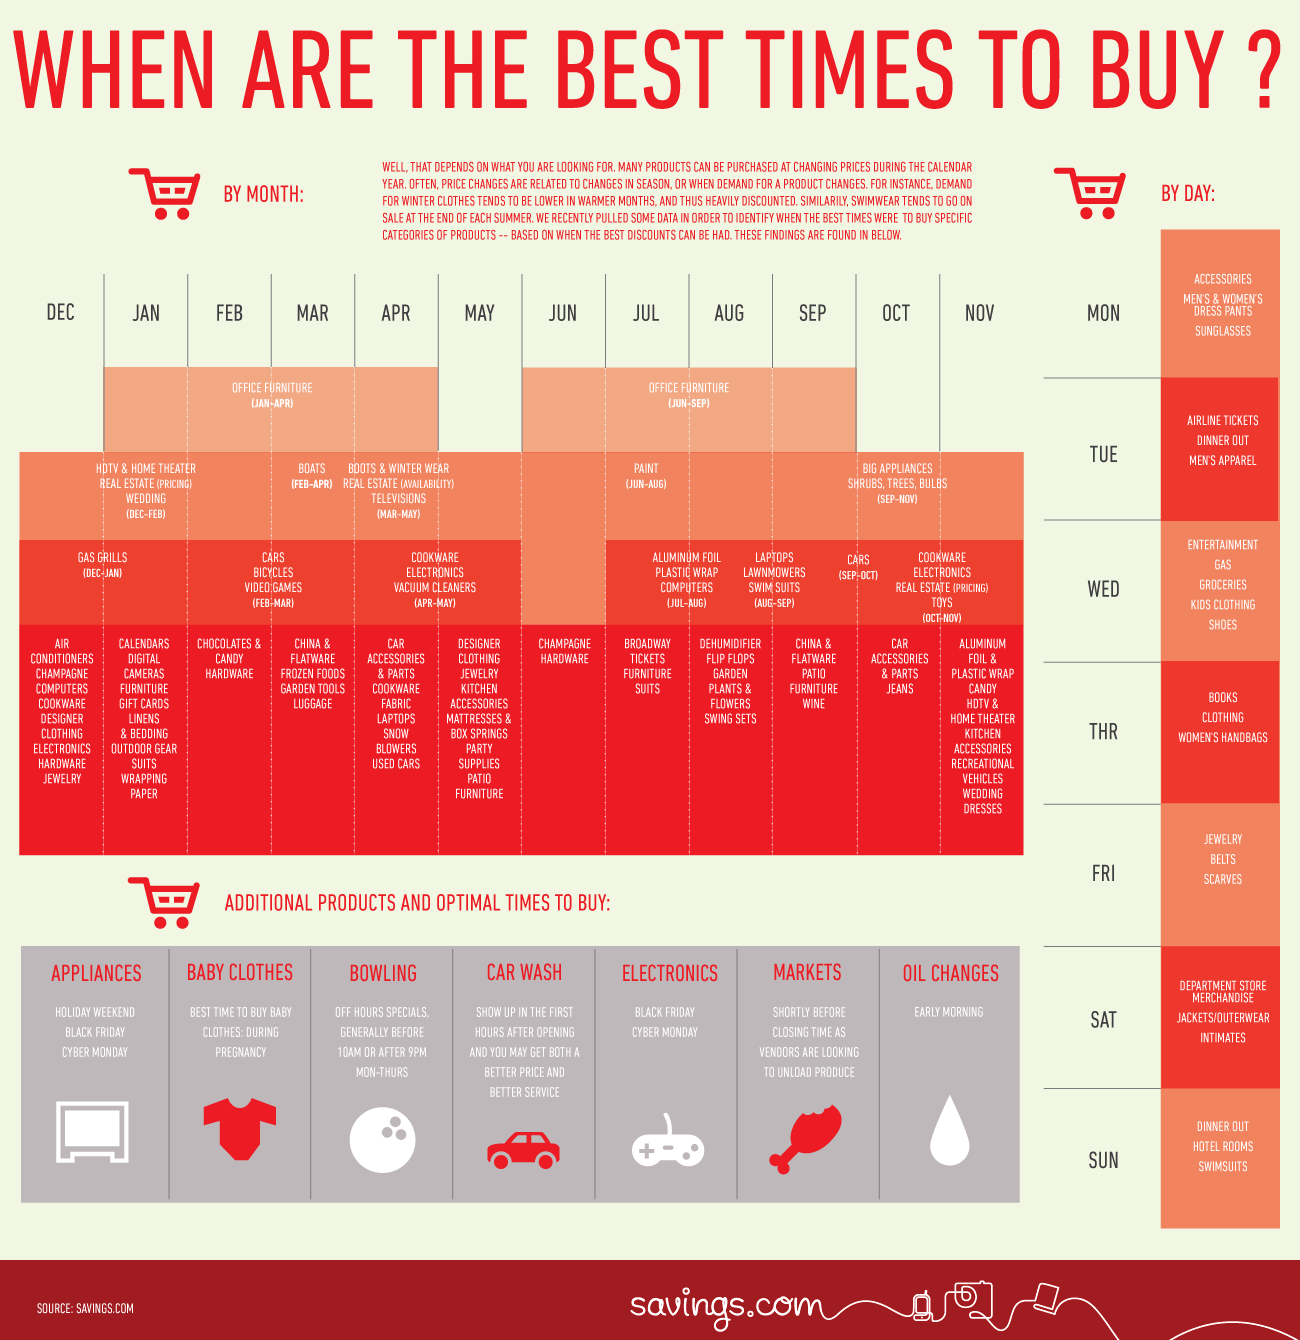 When to buy what?